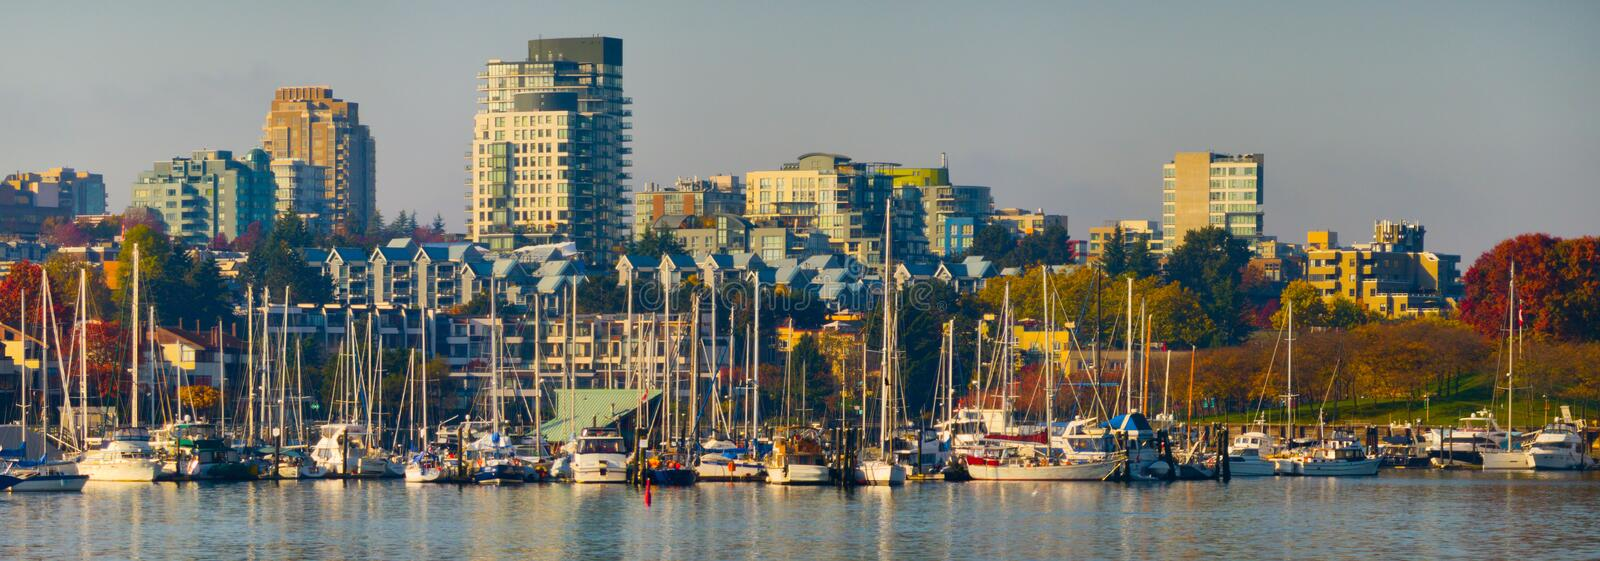 Vancouver False Creek royalty free stock images